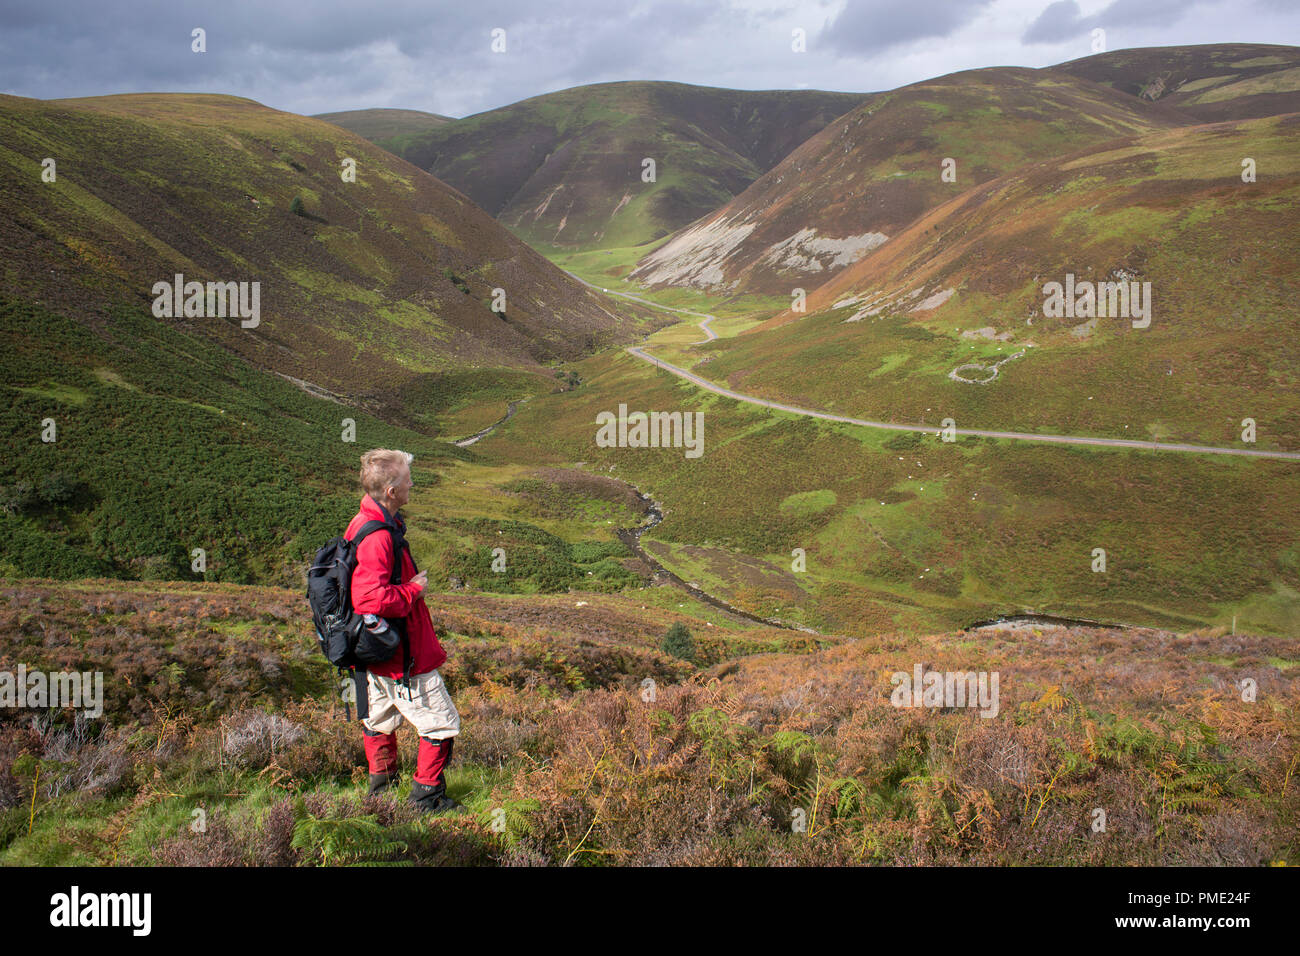 On the ancient path Dempster Road looking down and across the Mennock Pass tp Auchengruith Craig with Brown Hill, Wether Hill and White Dod behind - Stock Image